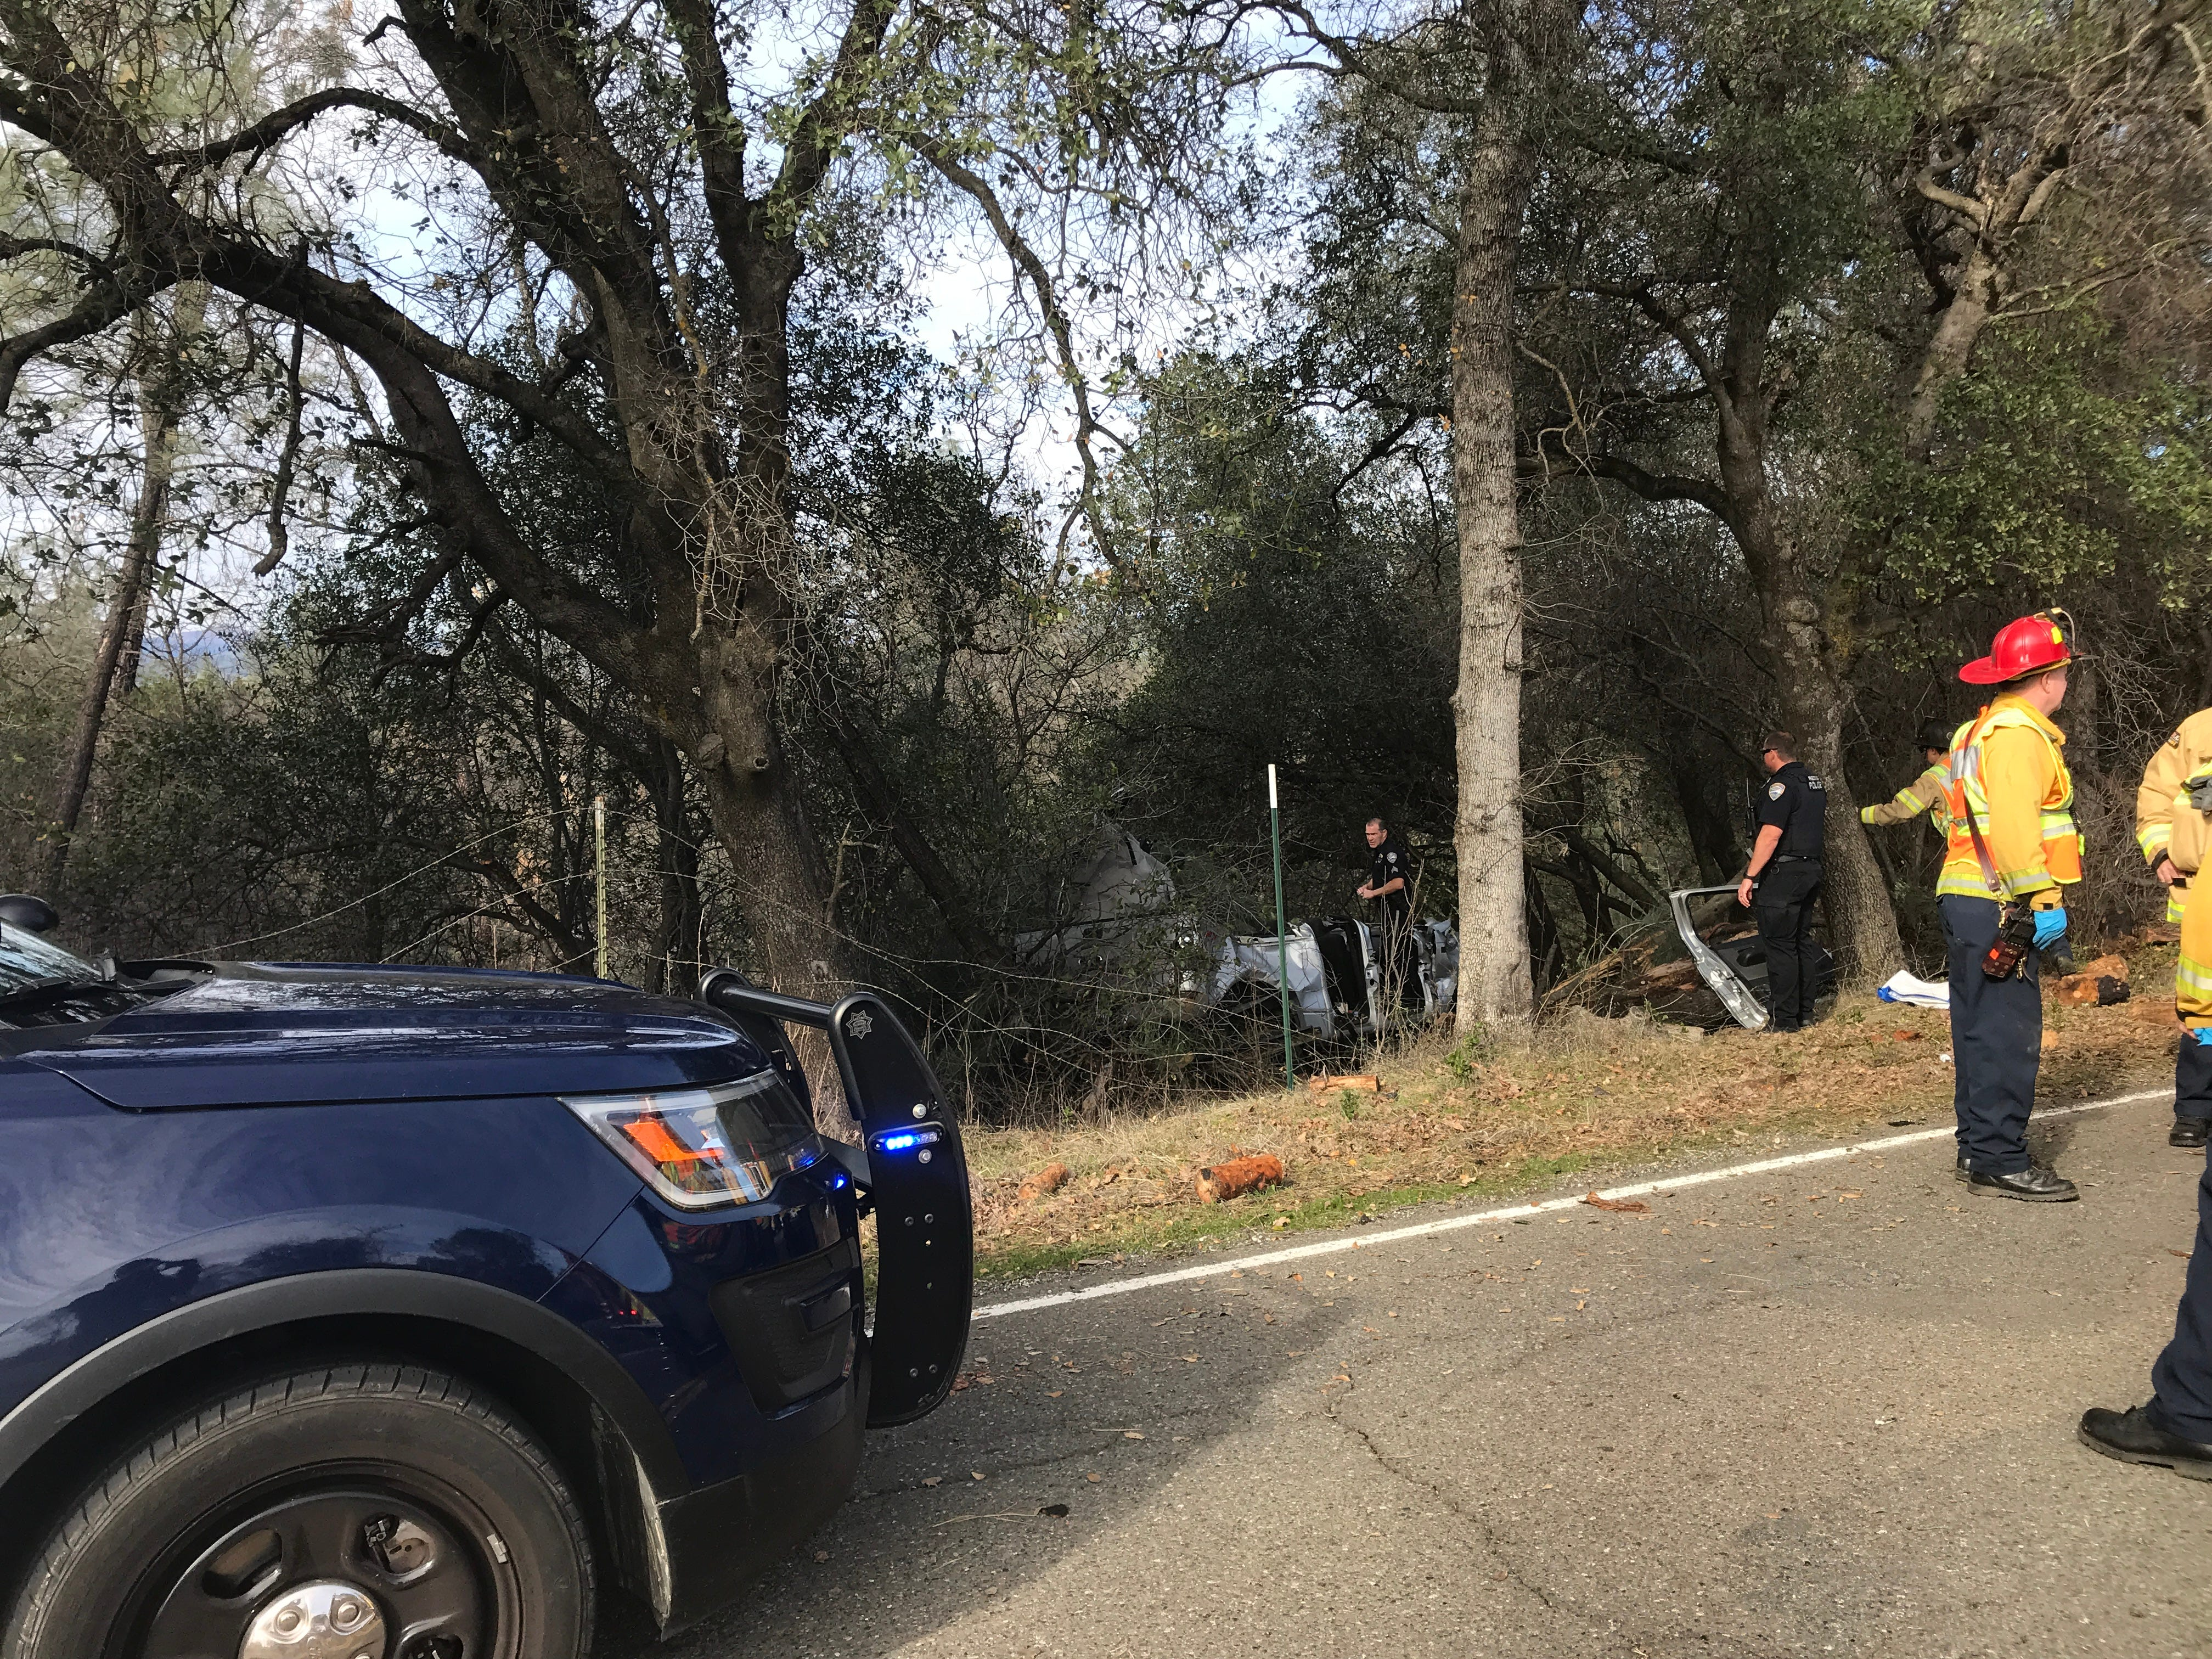 Redding police officers and firefighters work the scene of a fatal wreck on Old Oregon Trail on Monday, Jan. 14, 2019.